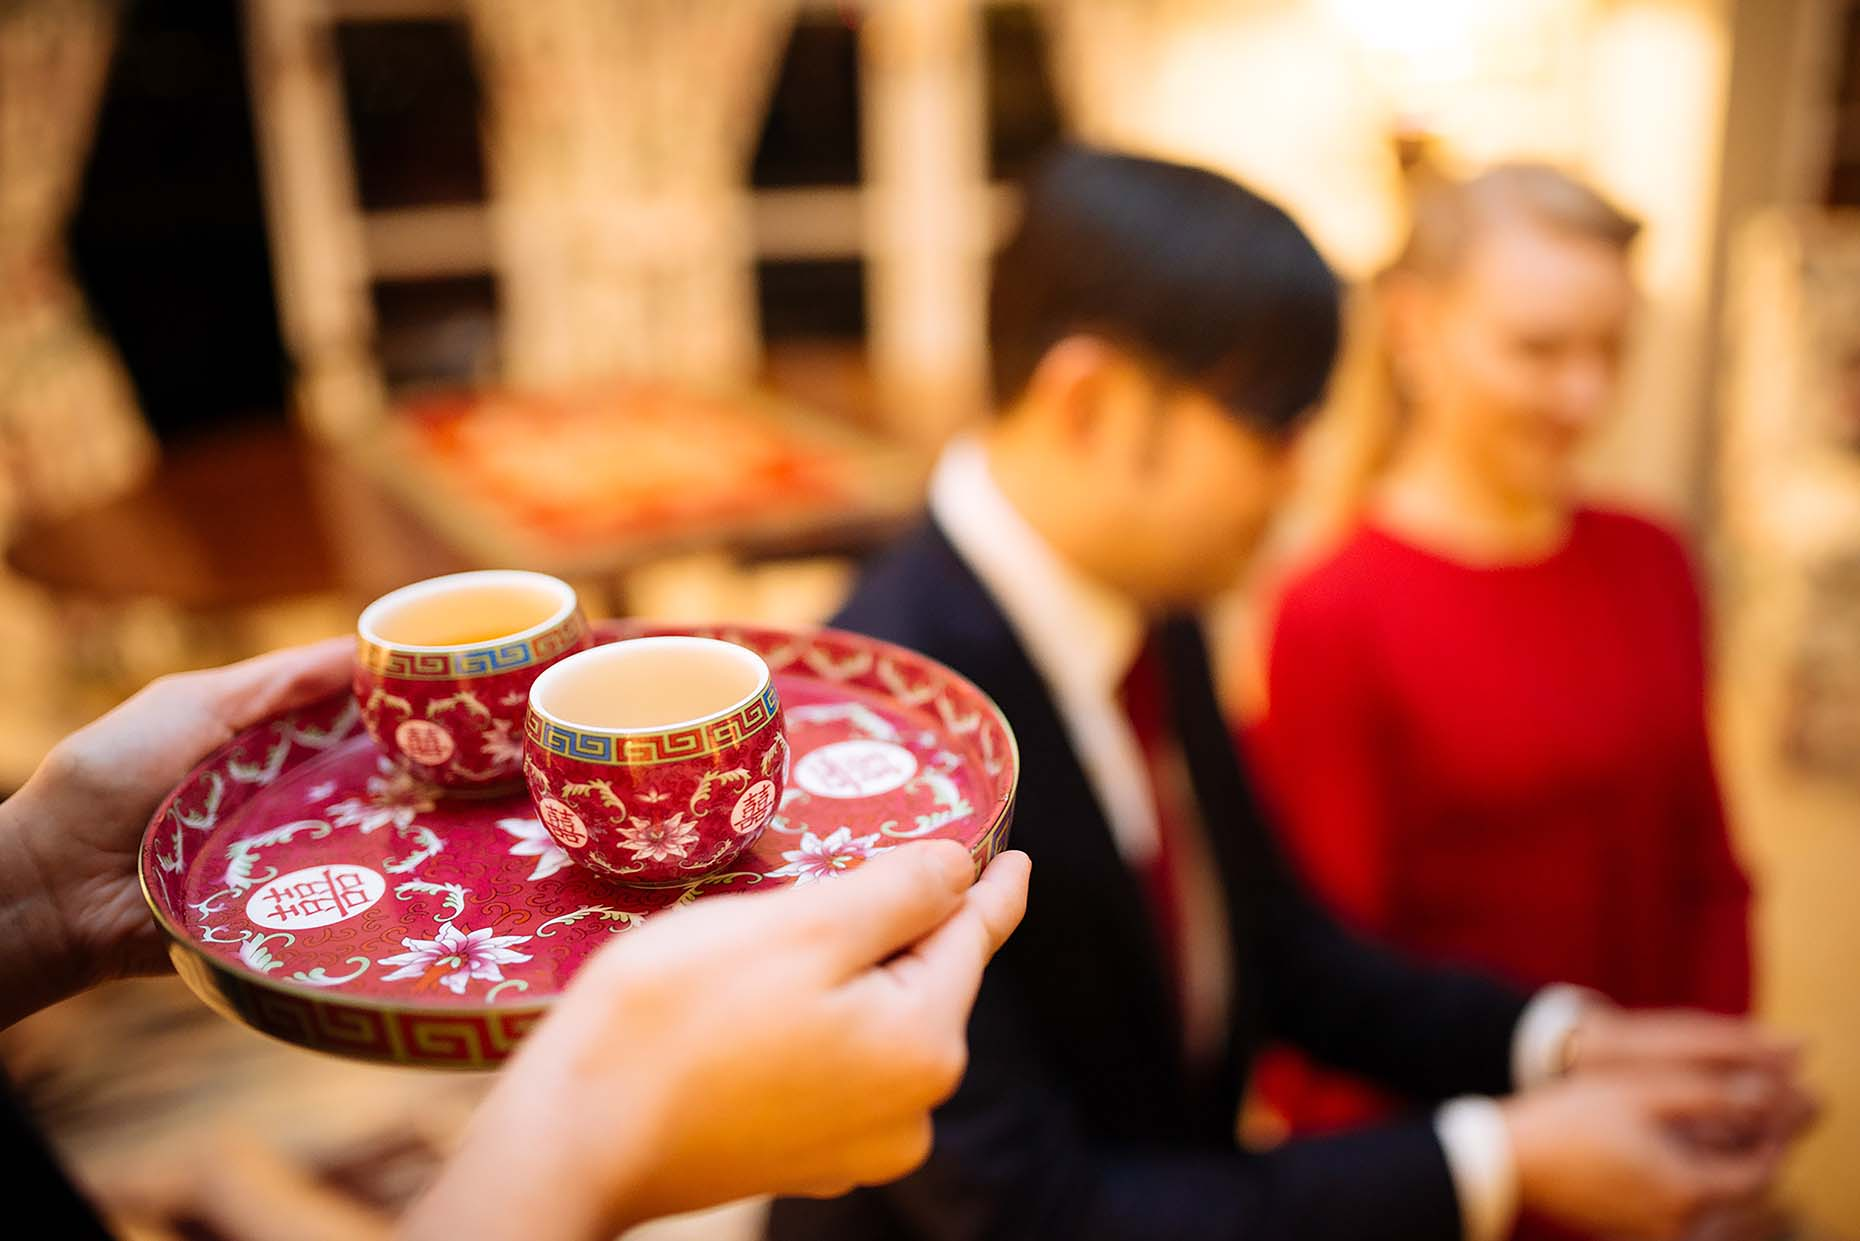 chinese-tea-ceremony-cup-wedding-london-ritz-hotel-amber-12